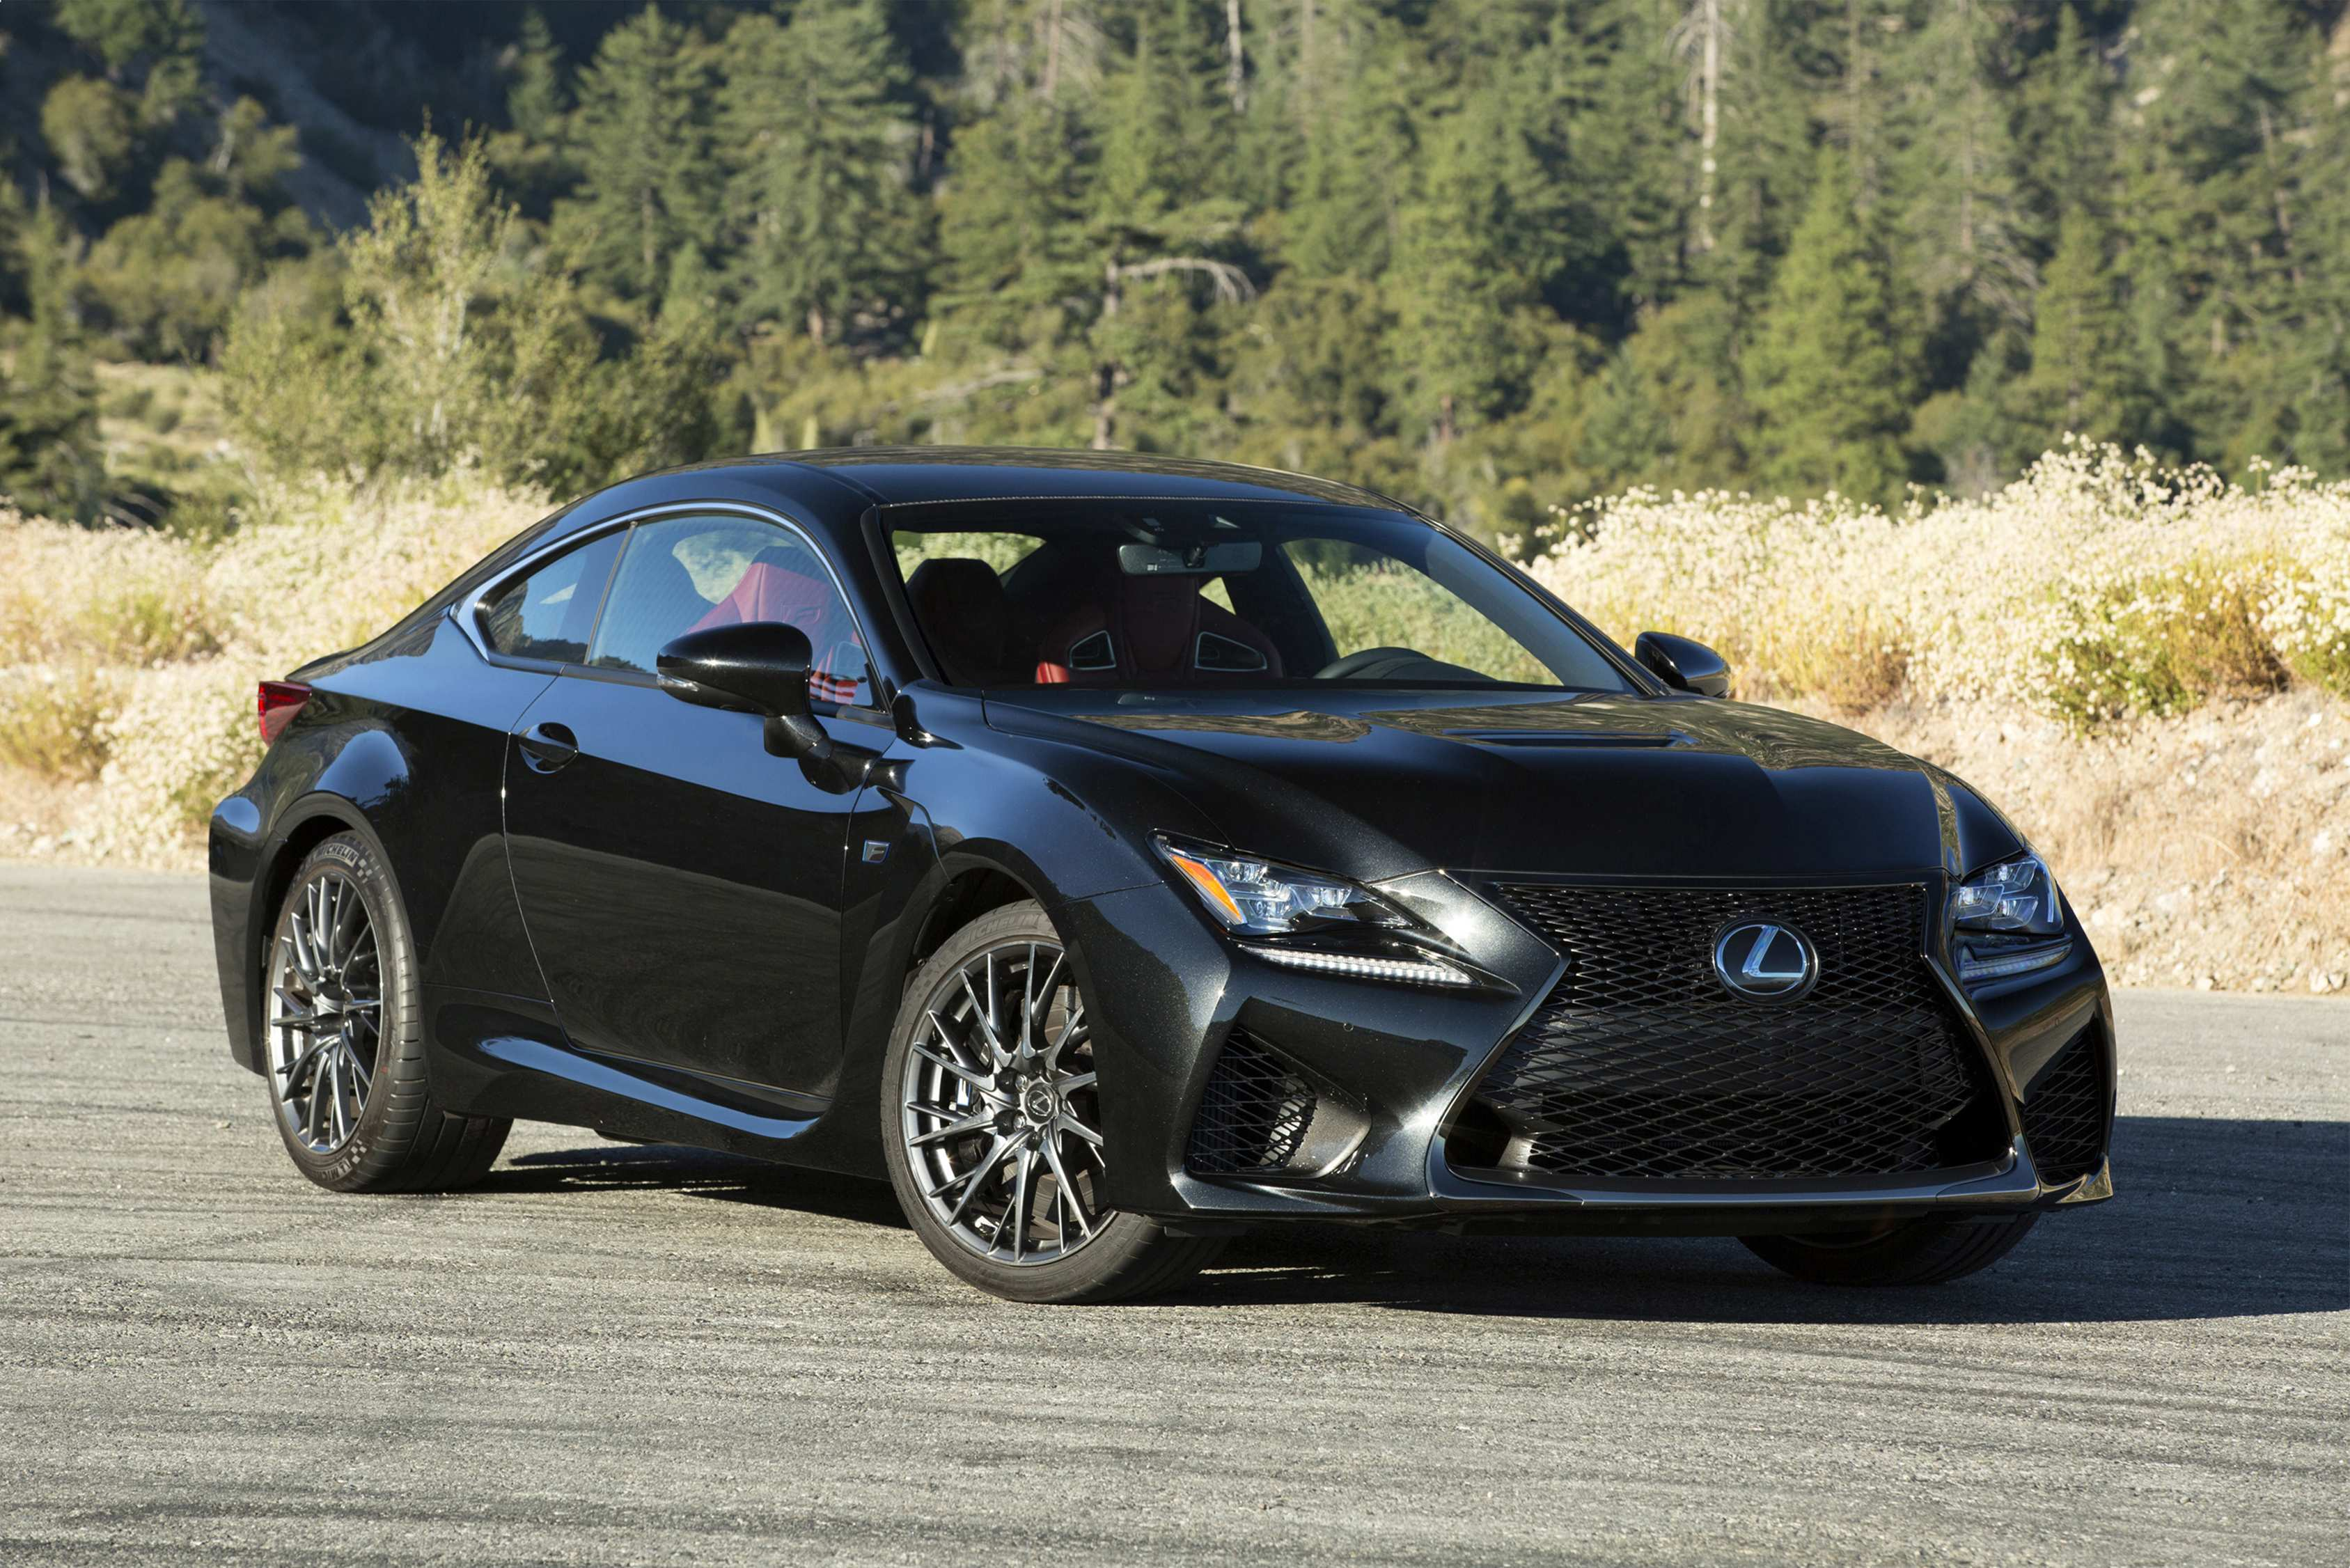 47 All New Lexus Rcf 2019 Release Date